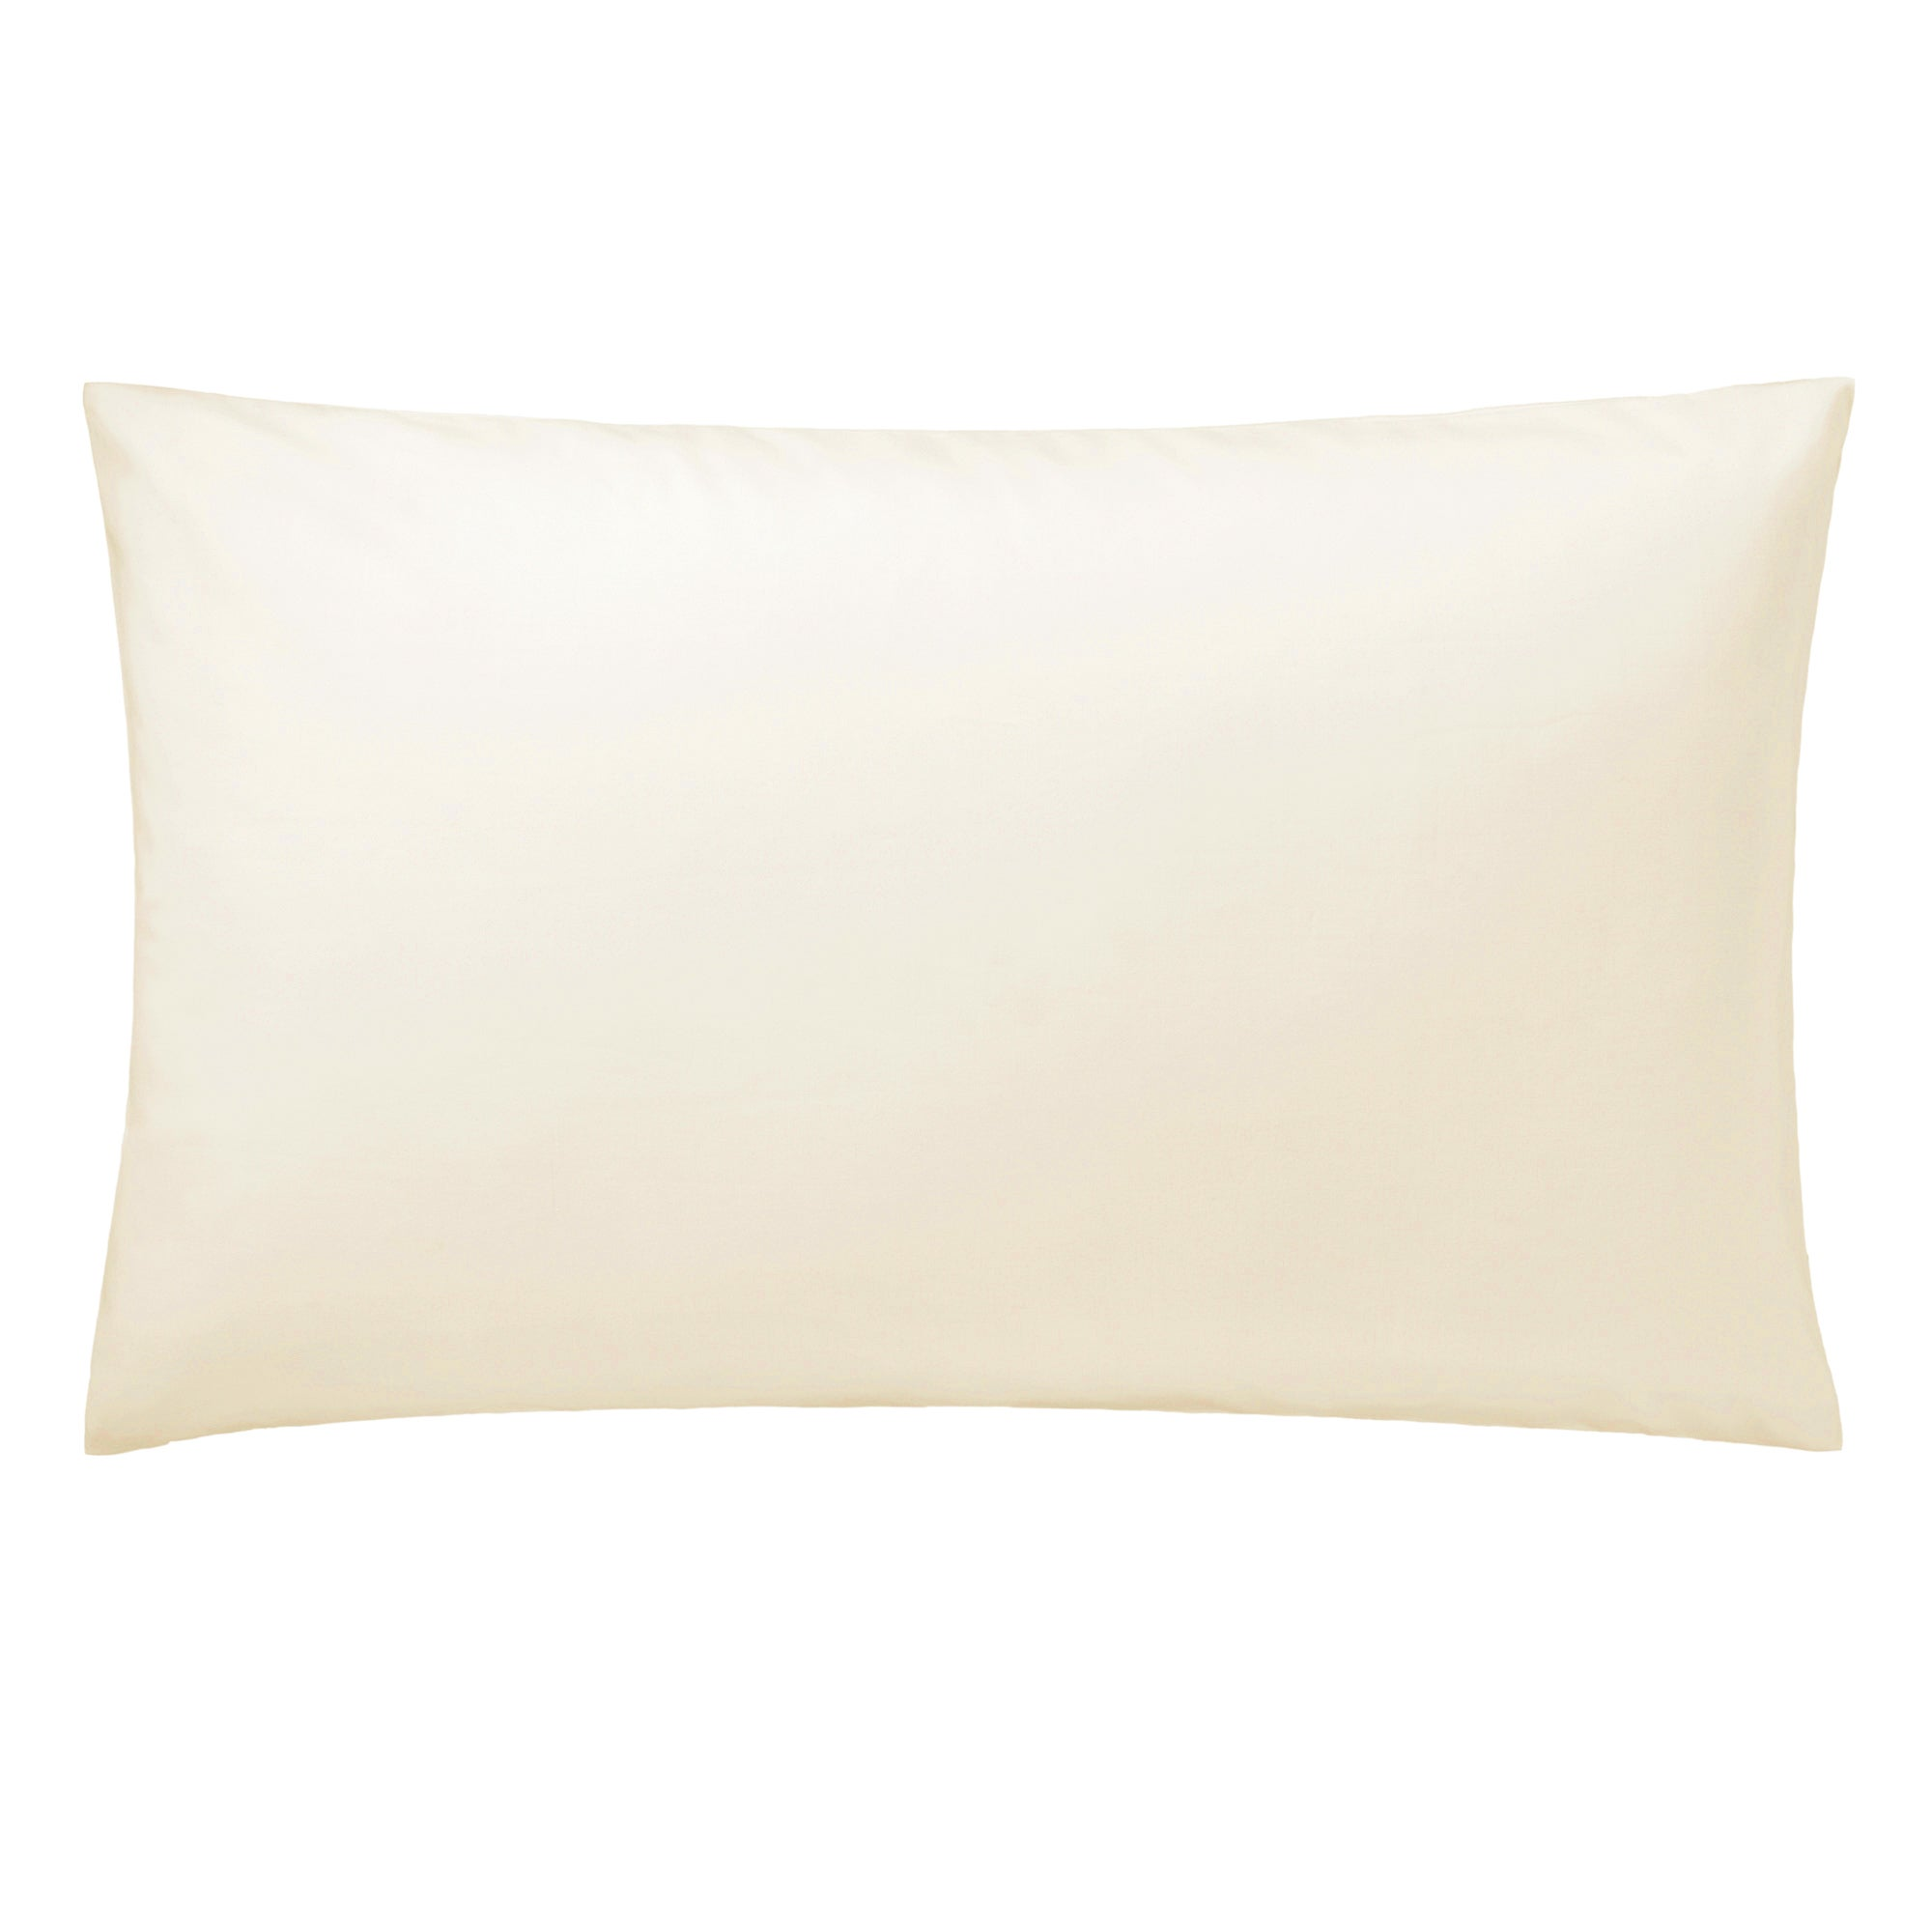 Cream Hotel Plain 300 Thread Count Collection Kingsize Pillowcase